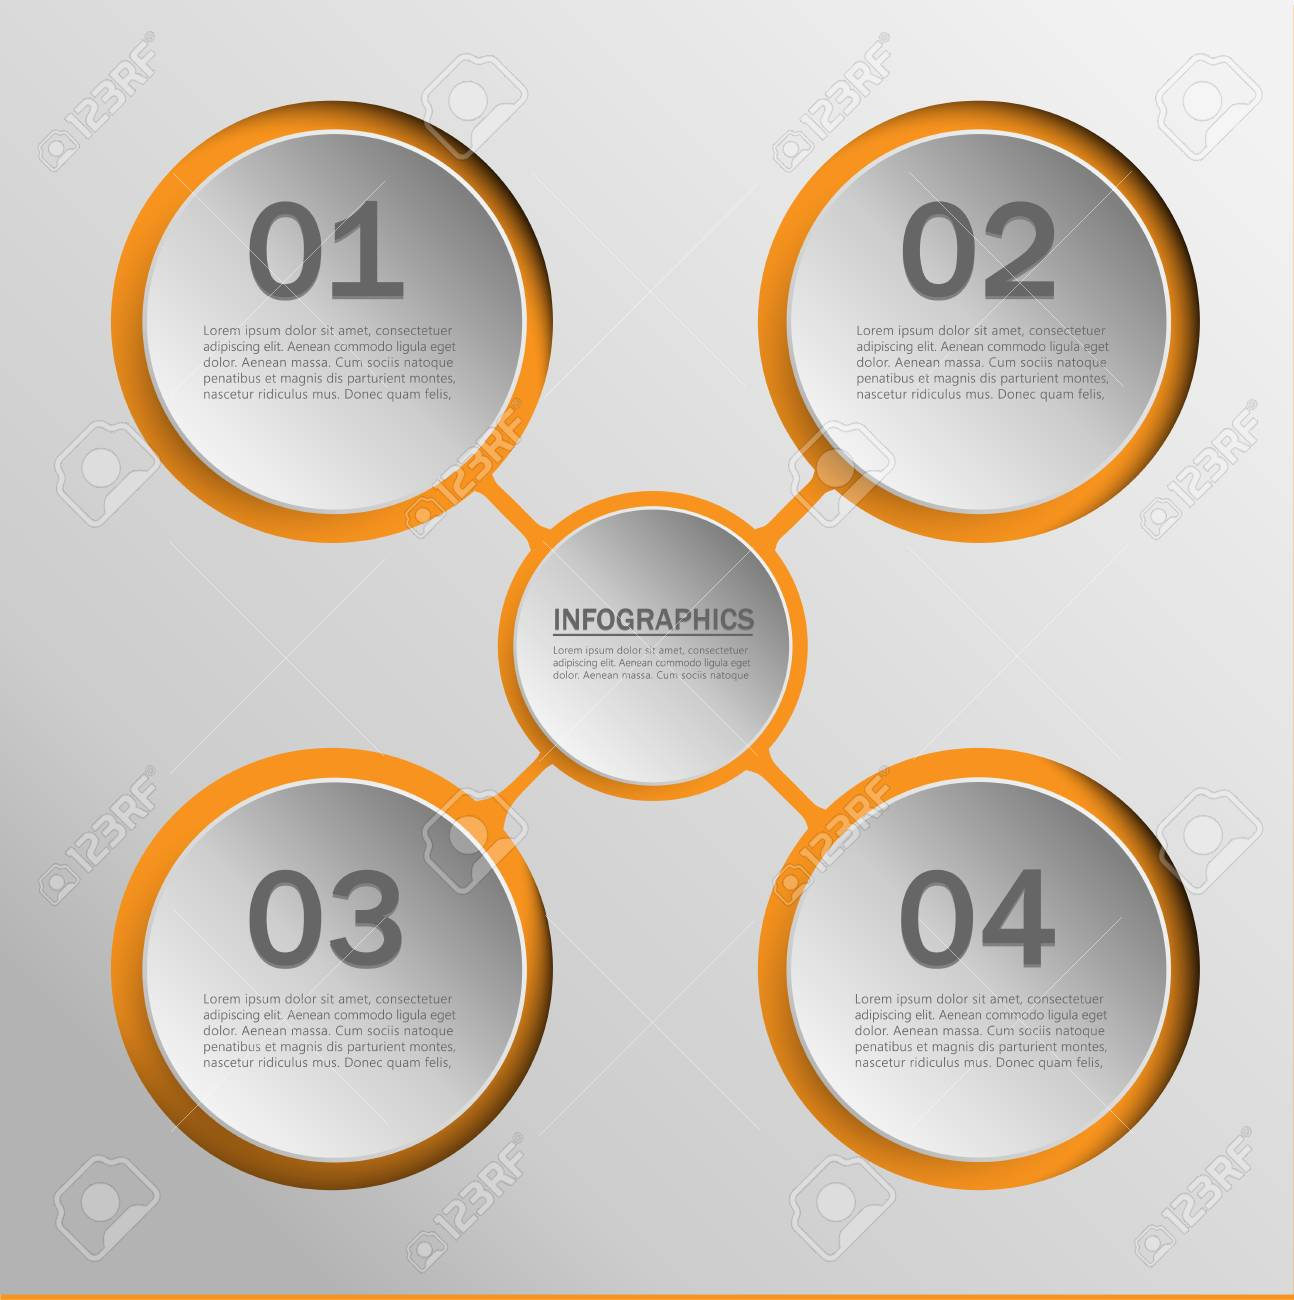 Infographics Templates For Charts, Graphs, Presentations And ...